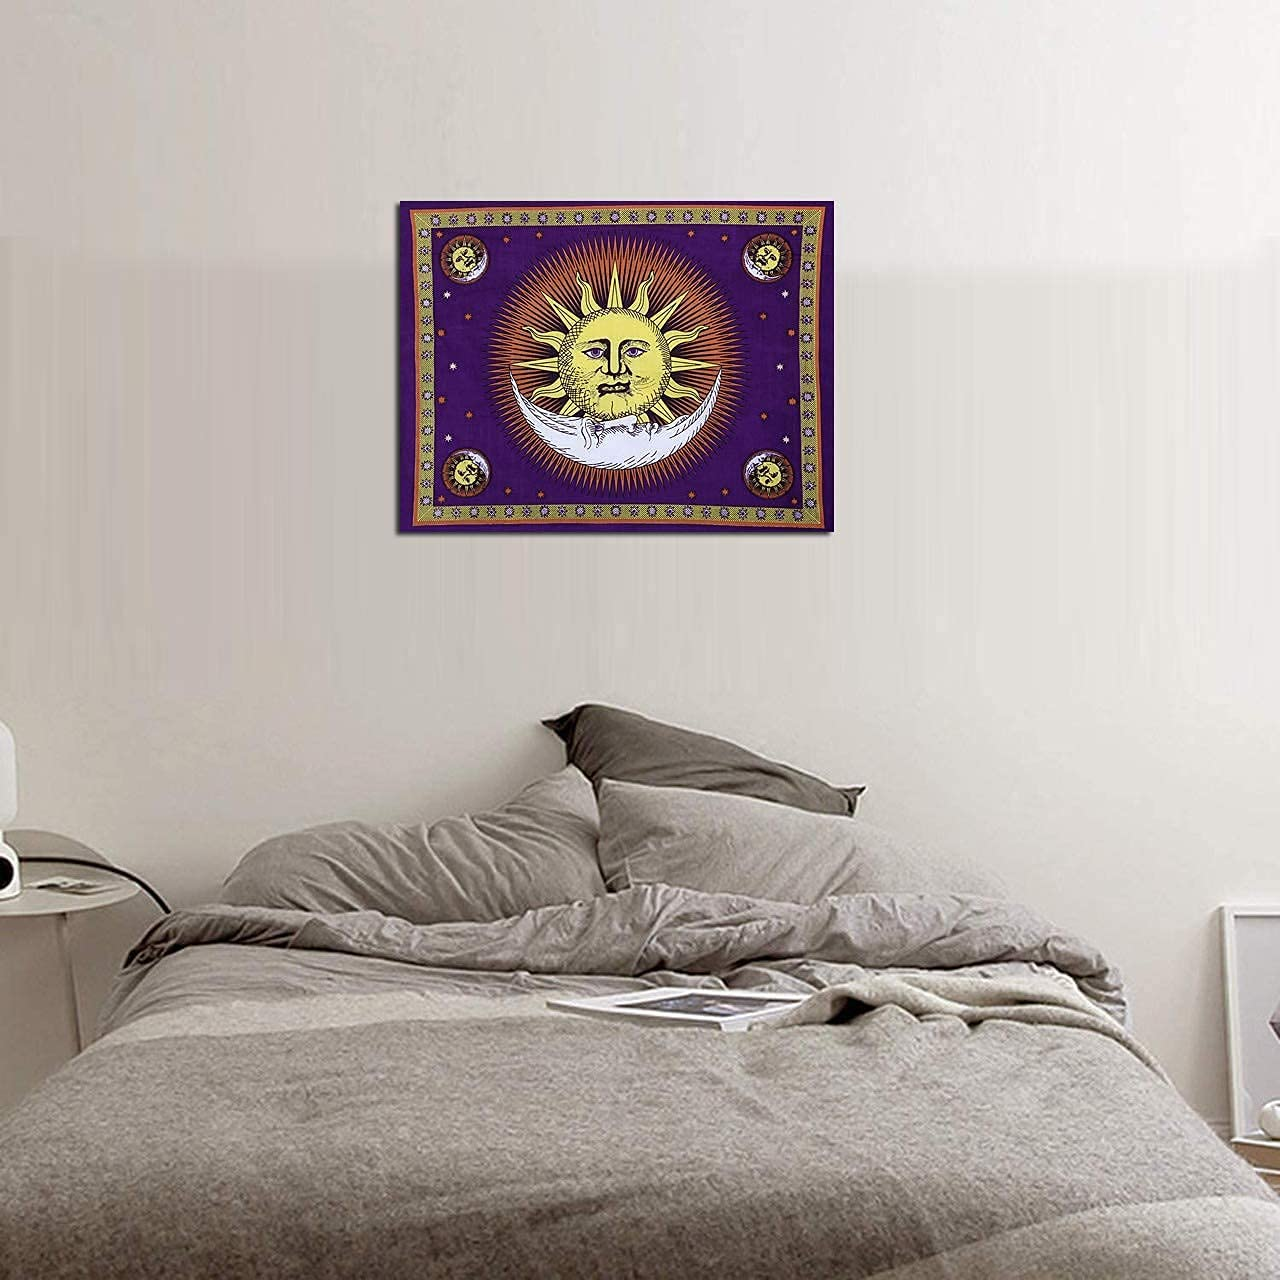 THE ART BOX Tapestry for Bedroom Asethetic, Sun and Moon Wall Décor, Good Morning Tapestry, Boho Tapestries to Add Colour Palette of Your Home (Purple, 30x40 Inches, Cotton)